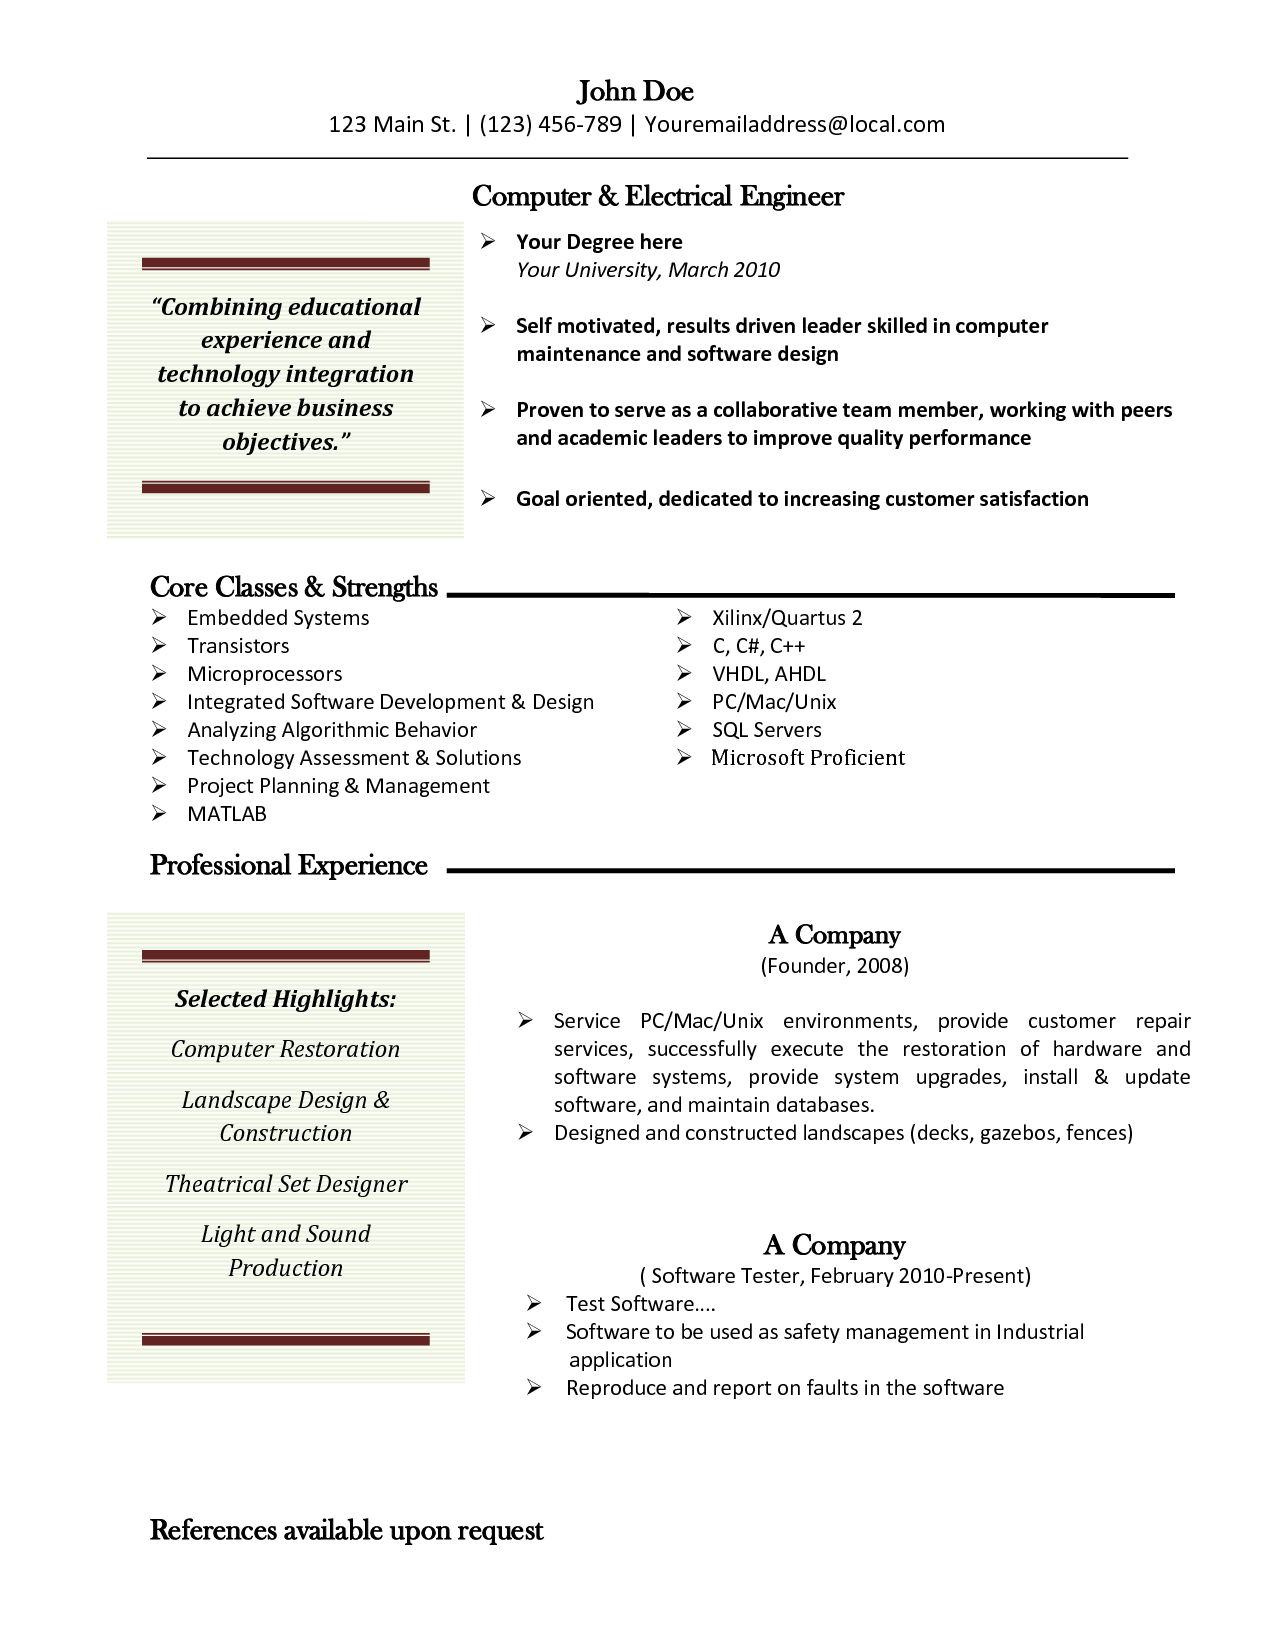 Free Resume Templates Word 2010 Best Freeresumetemplatesformaccqjykibi 1275×1650  Cv